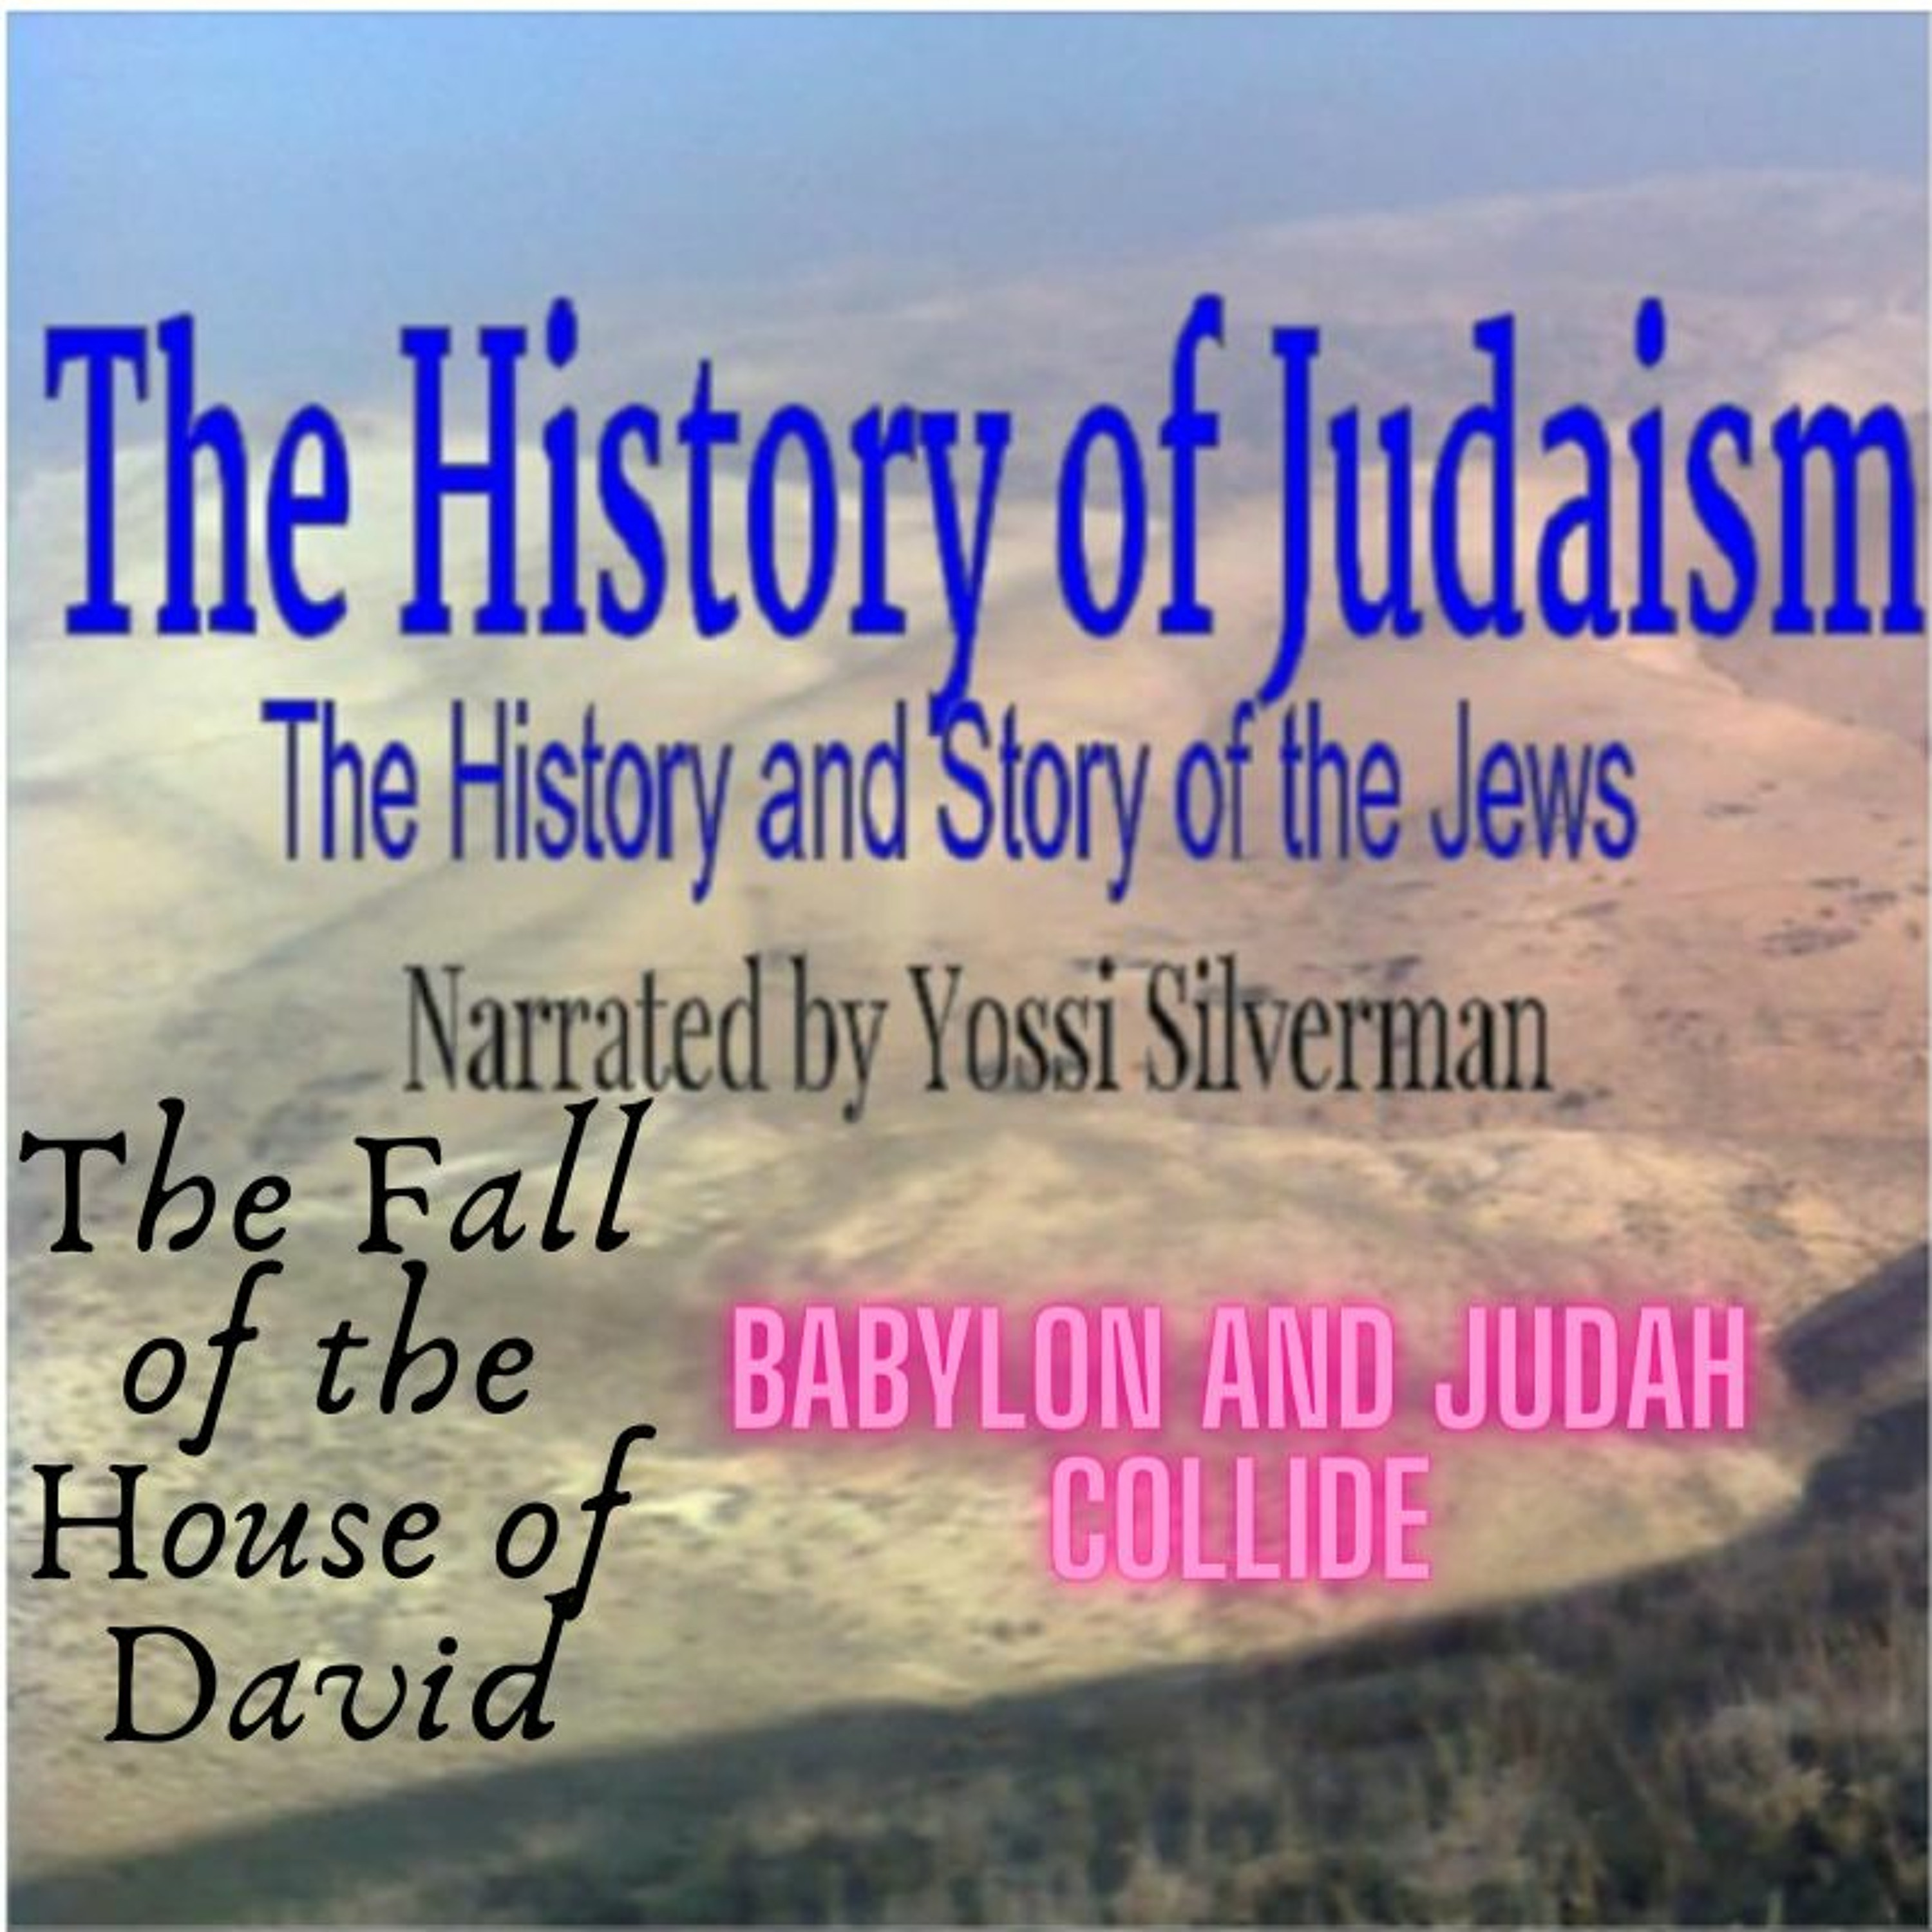 13. The Fall of the House of David - Babylon and Judah Collide